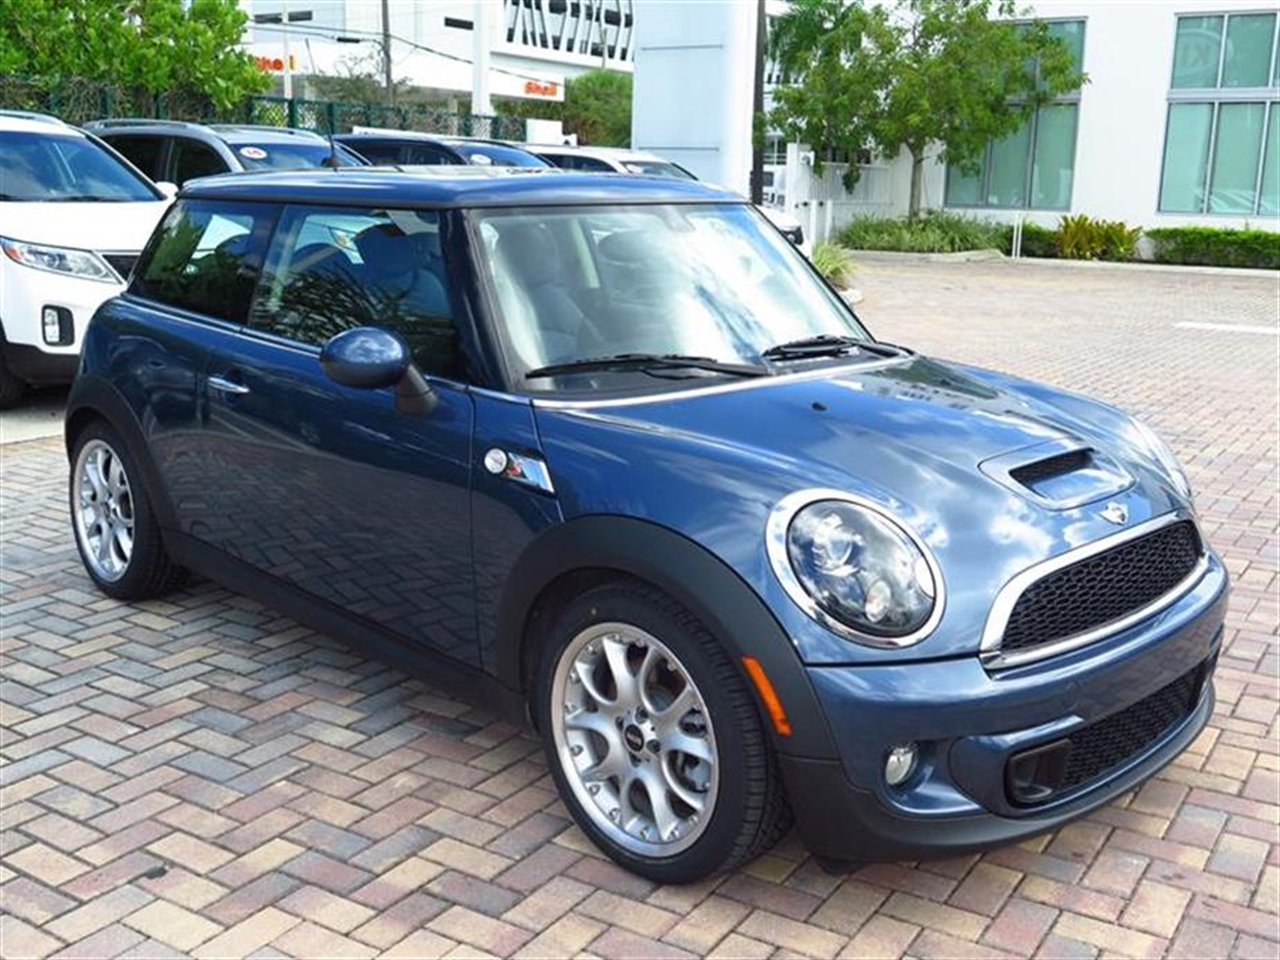 2011 MINI COOPER S 2dr Cpe S 38679 miles 1 rear cup holder 12V auxiliary pwr outlet in cockpit